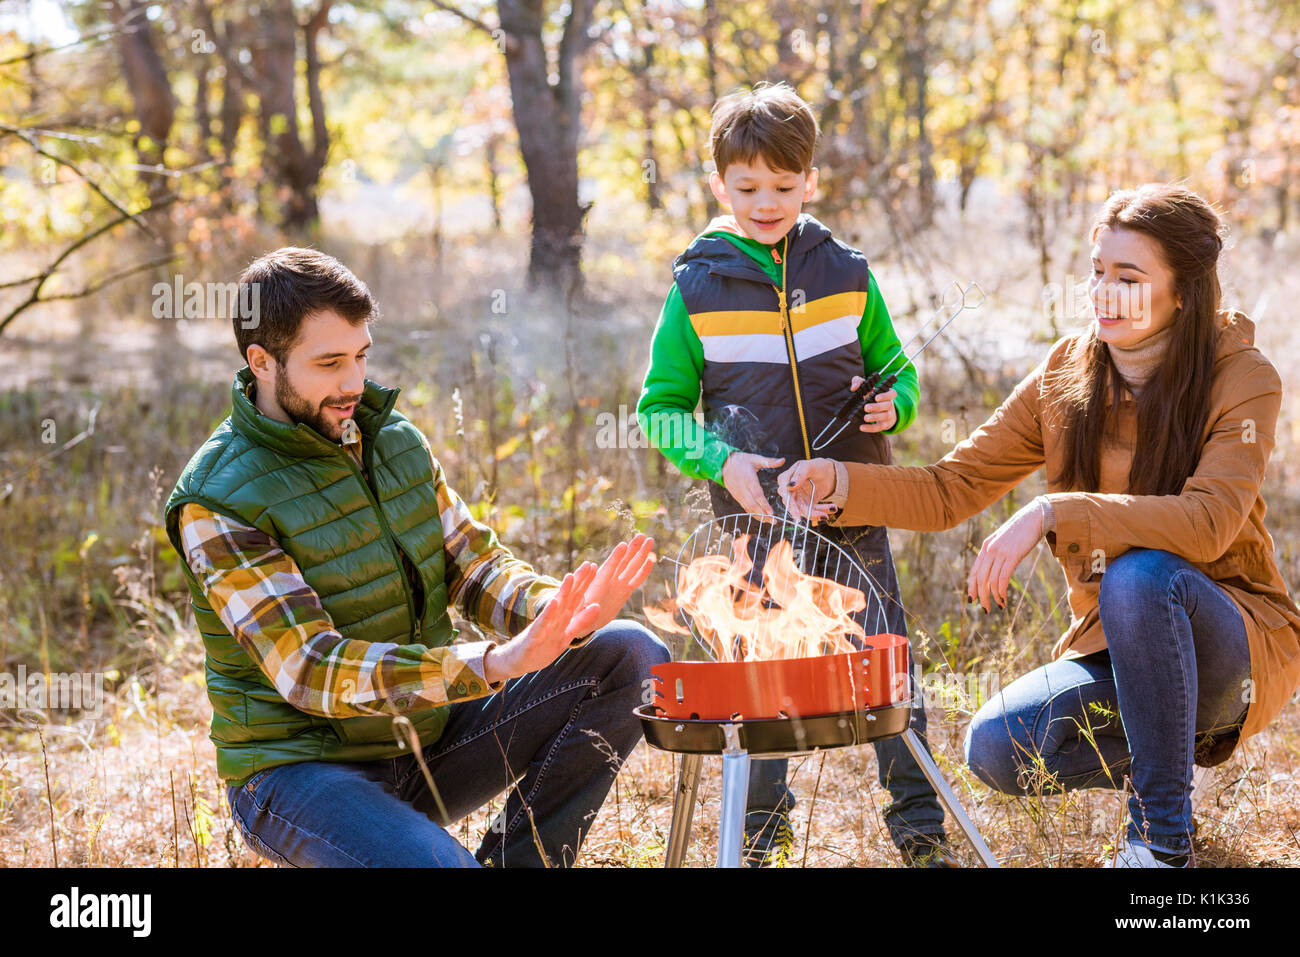 Portrait of happy family with one child preparing barbecue on grill in autumn park Stock Photo